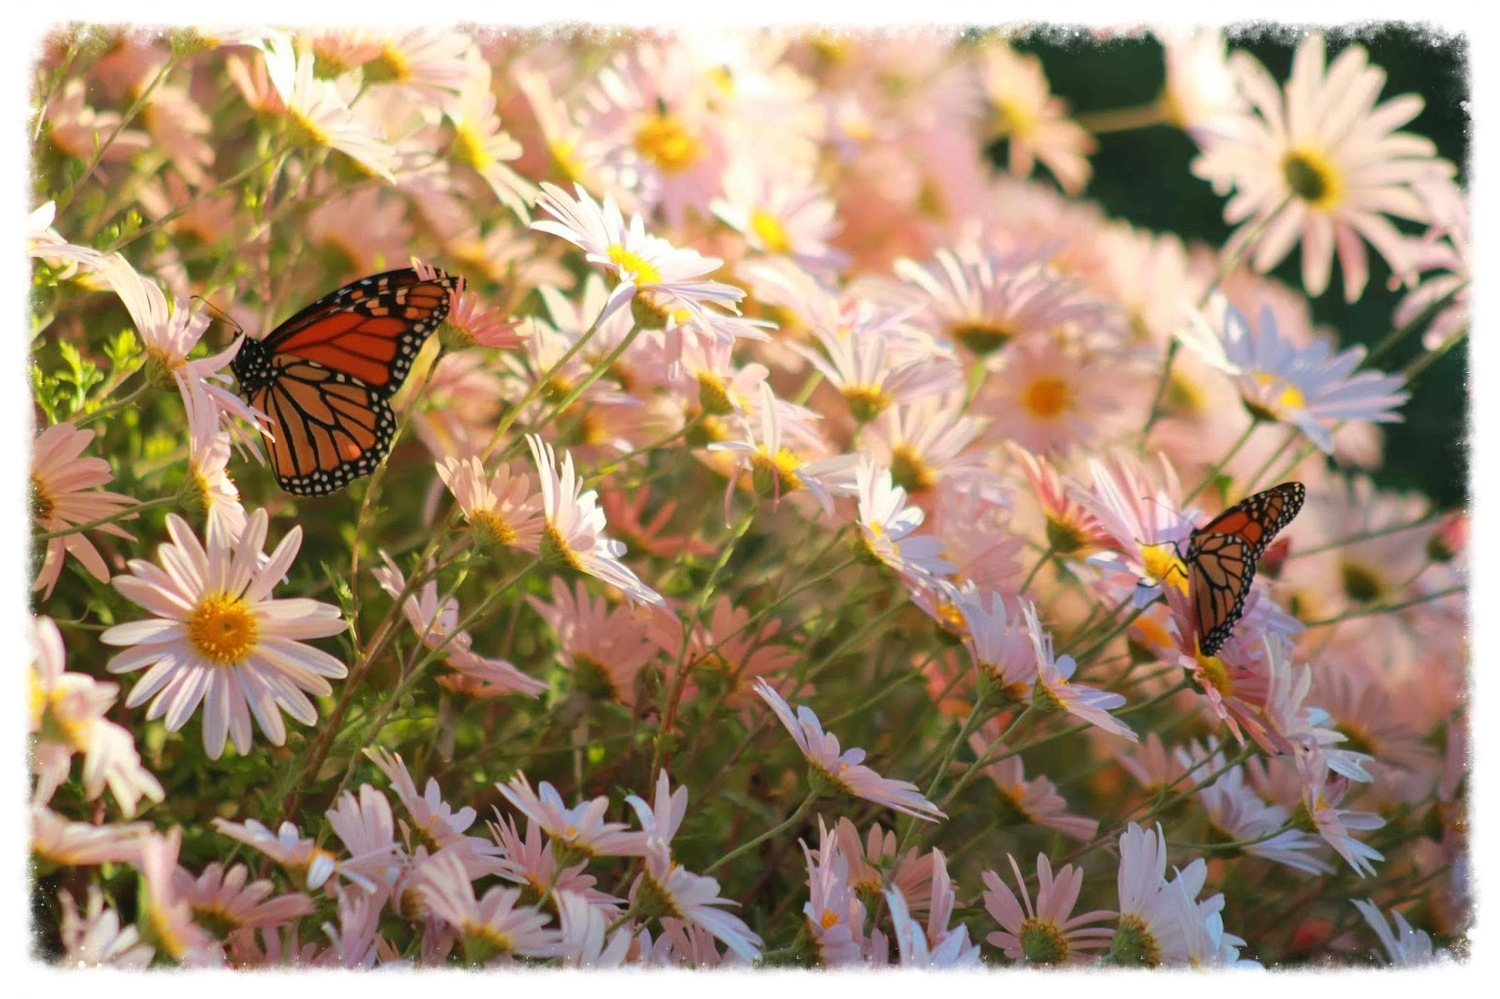 Two monarchs on a large pile of open-form mums.